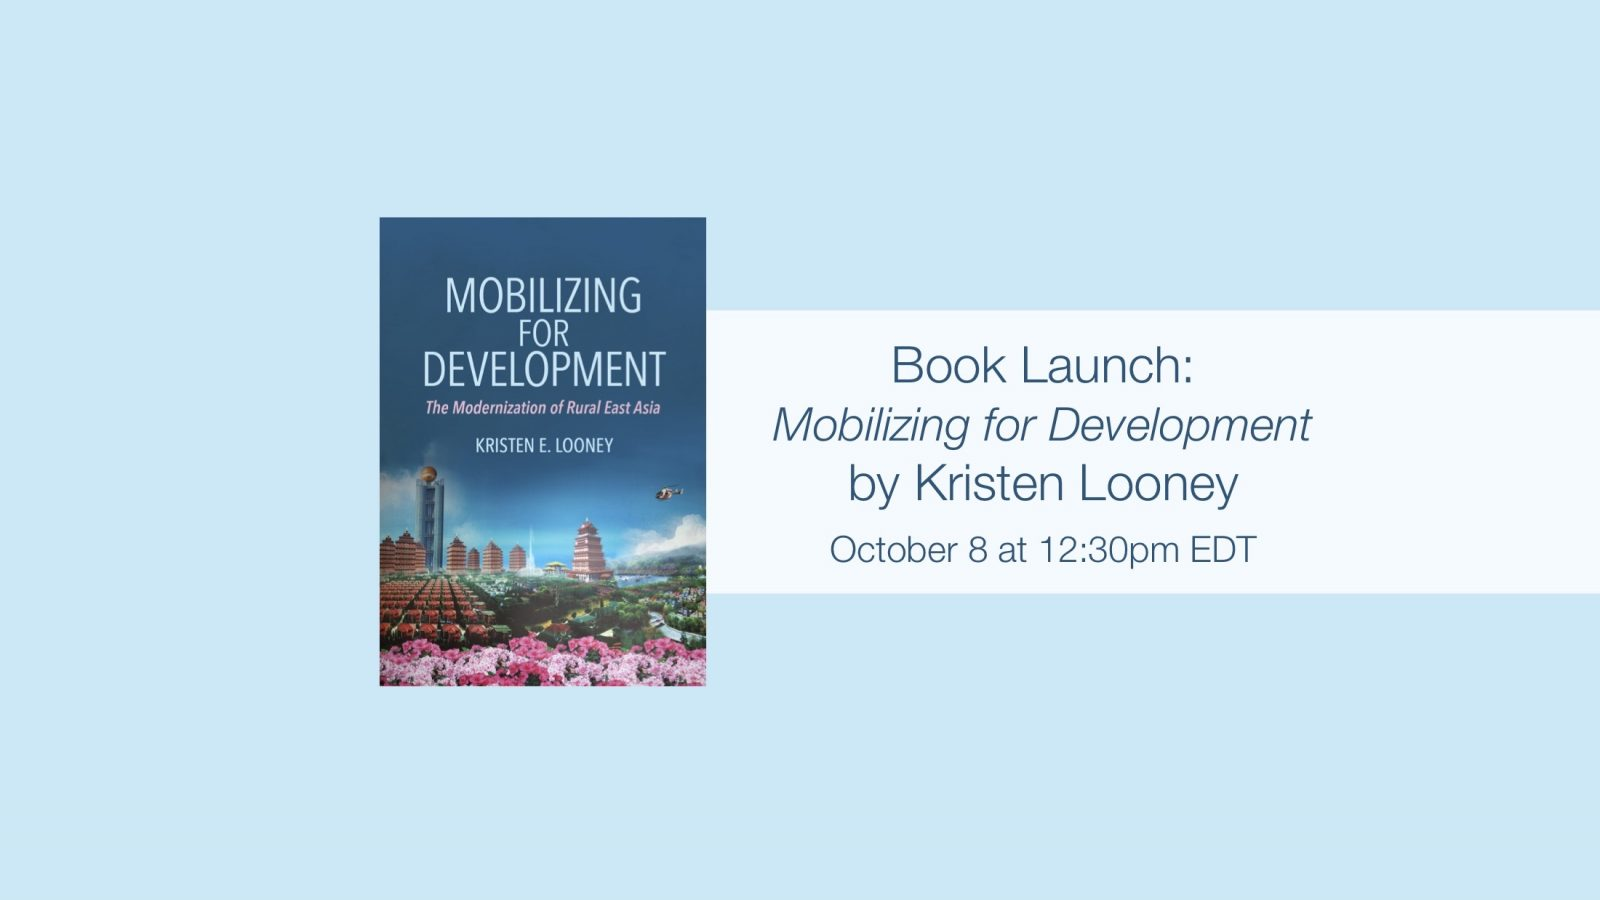 Book Launch: Mobilizing for Development by Kristen Looney on October 8 at 12:30pm EDT